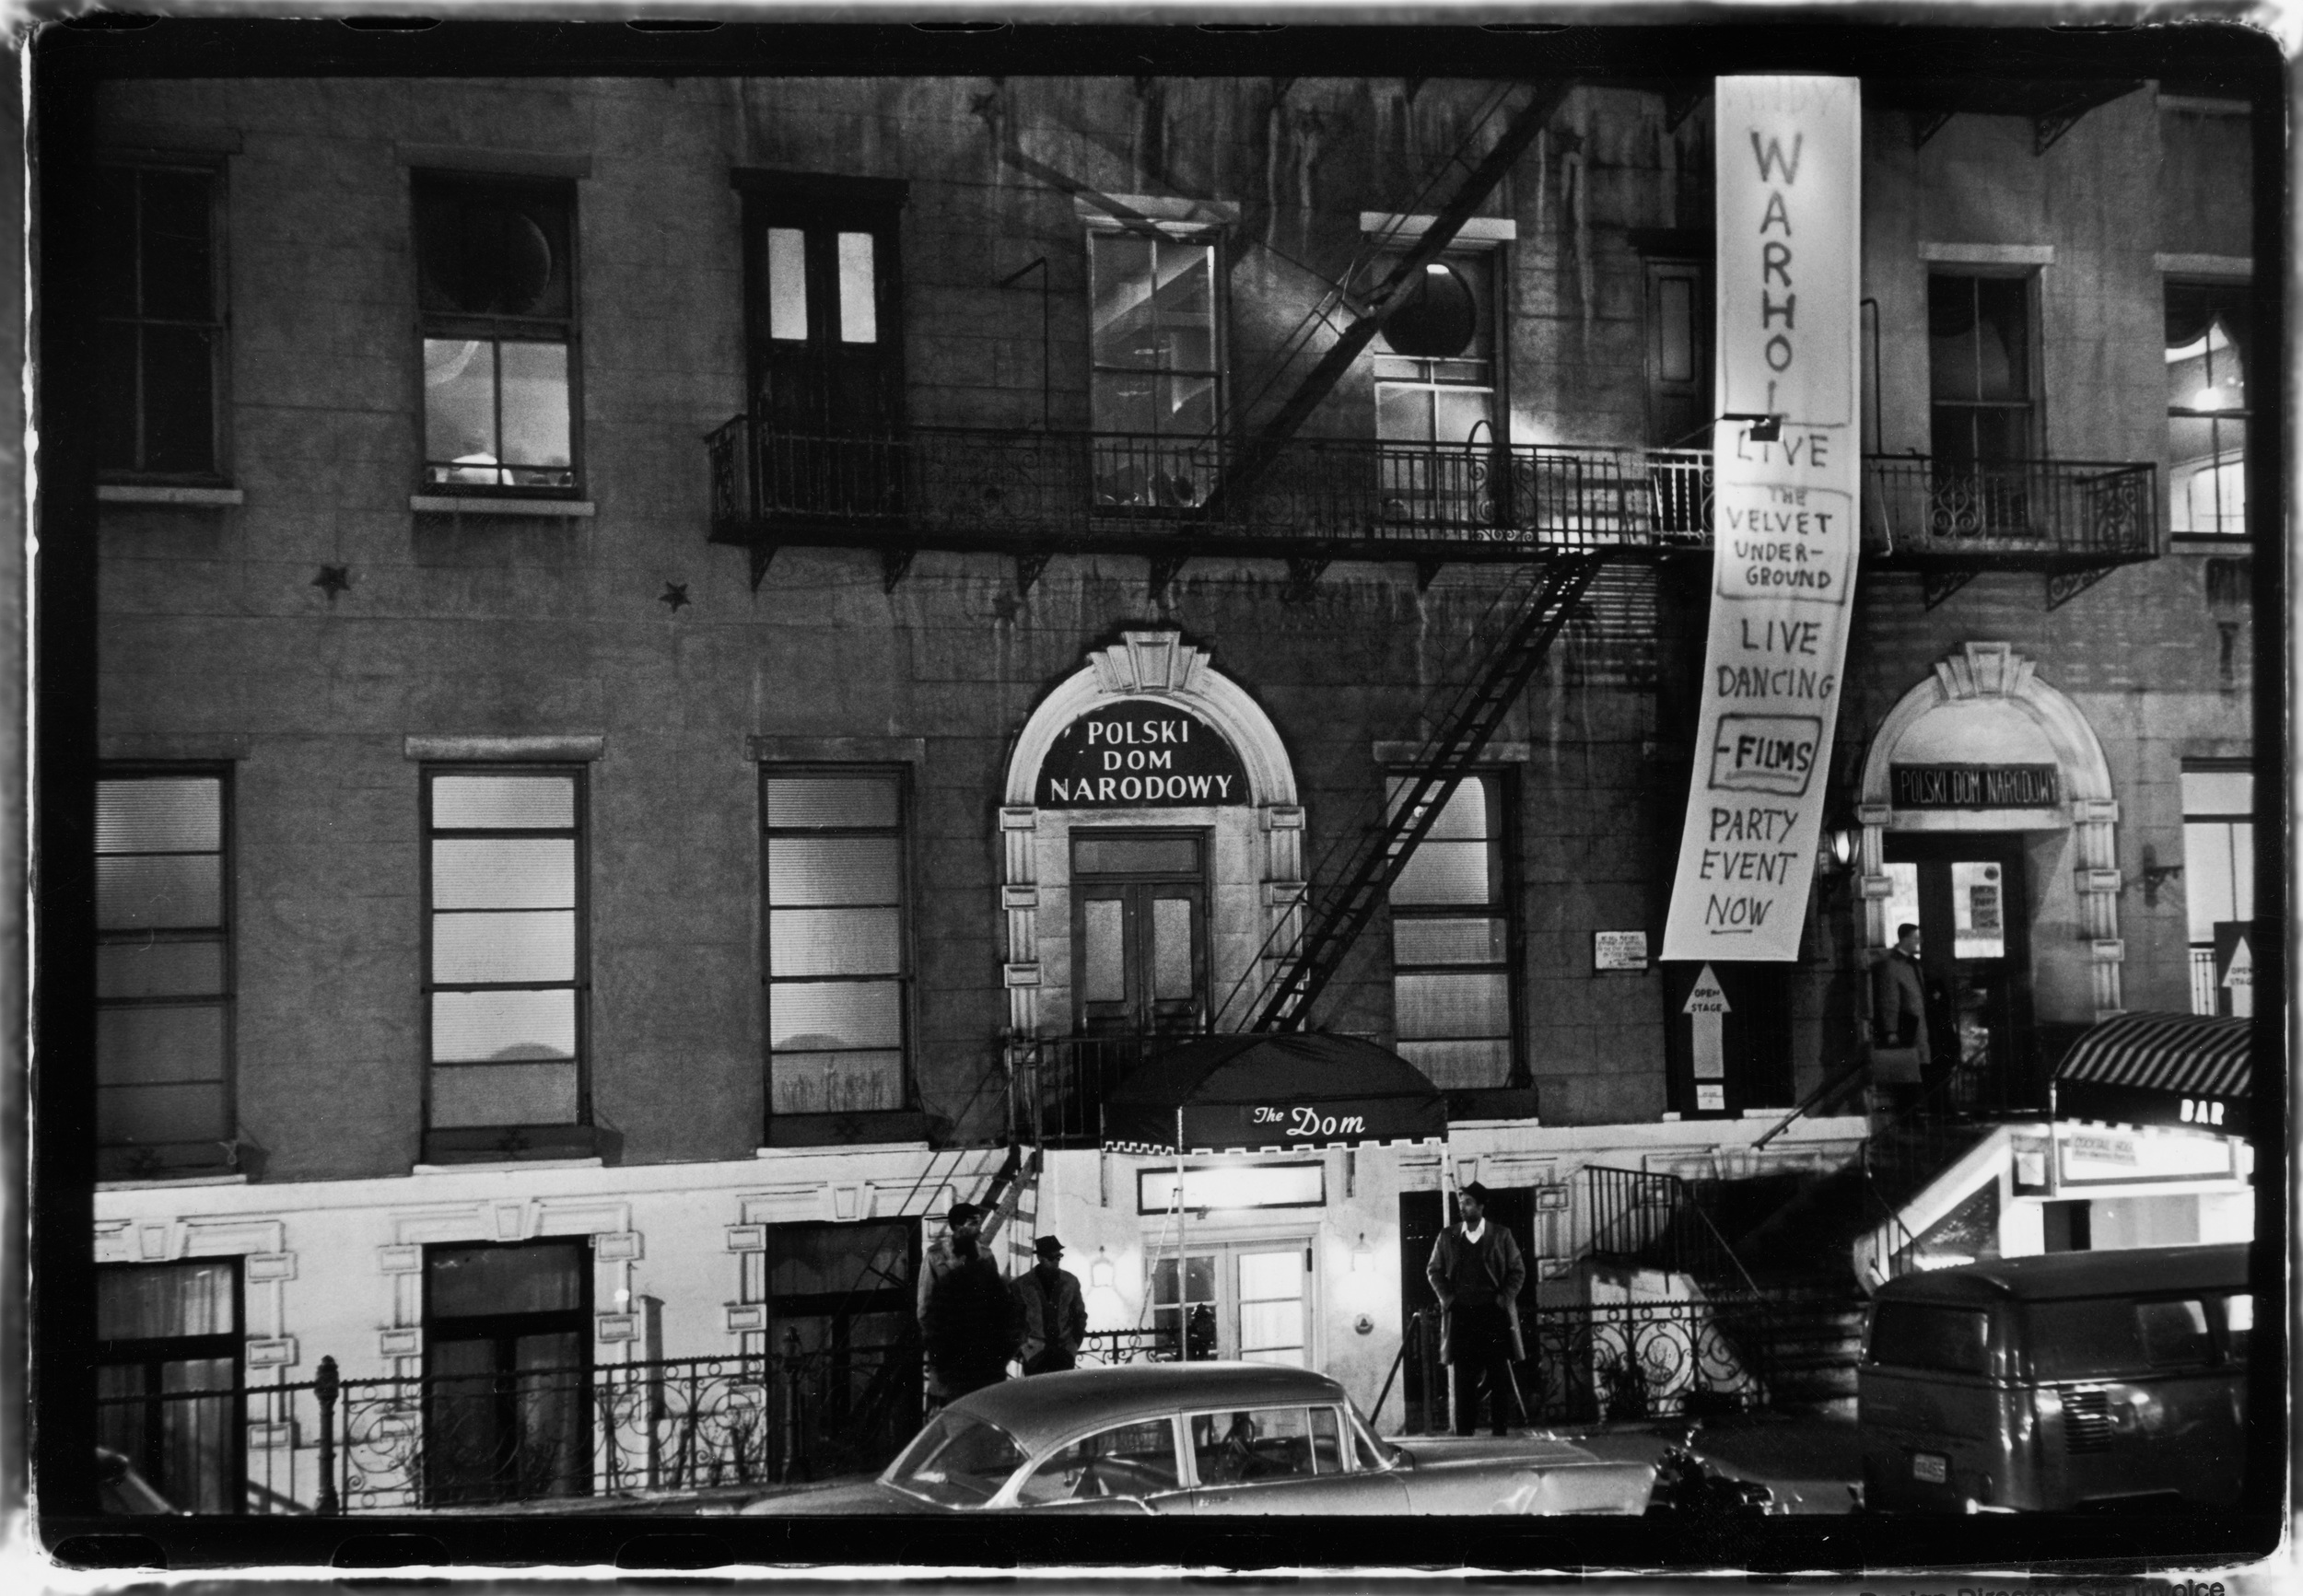 Above: Outside The Dom (from 'Polski Dom Narodowy' or 'Polish National Home', 23 St. Marks Place), where a banner advertises 'Warhol; Live; The Velvet Underground; Live Dancing; Films; Party Event Now,' part of Andy's Exploding Plastic Inevitable series of staged, multimedia events. March 31, 1966. Below: Same spot in February 2016. Photos copyright Estate of Fred W. McDarrah.